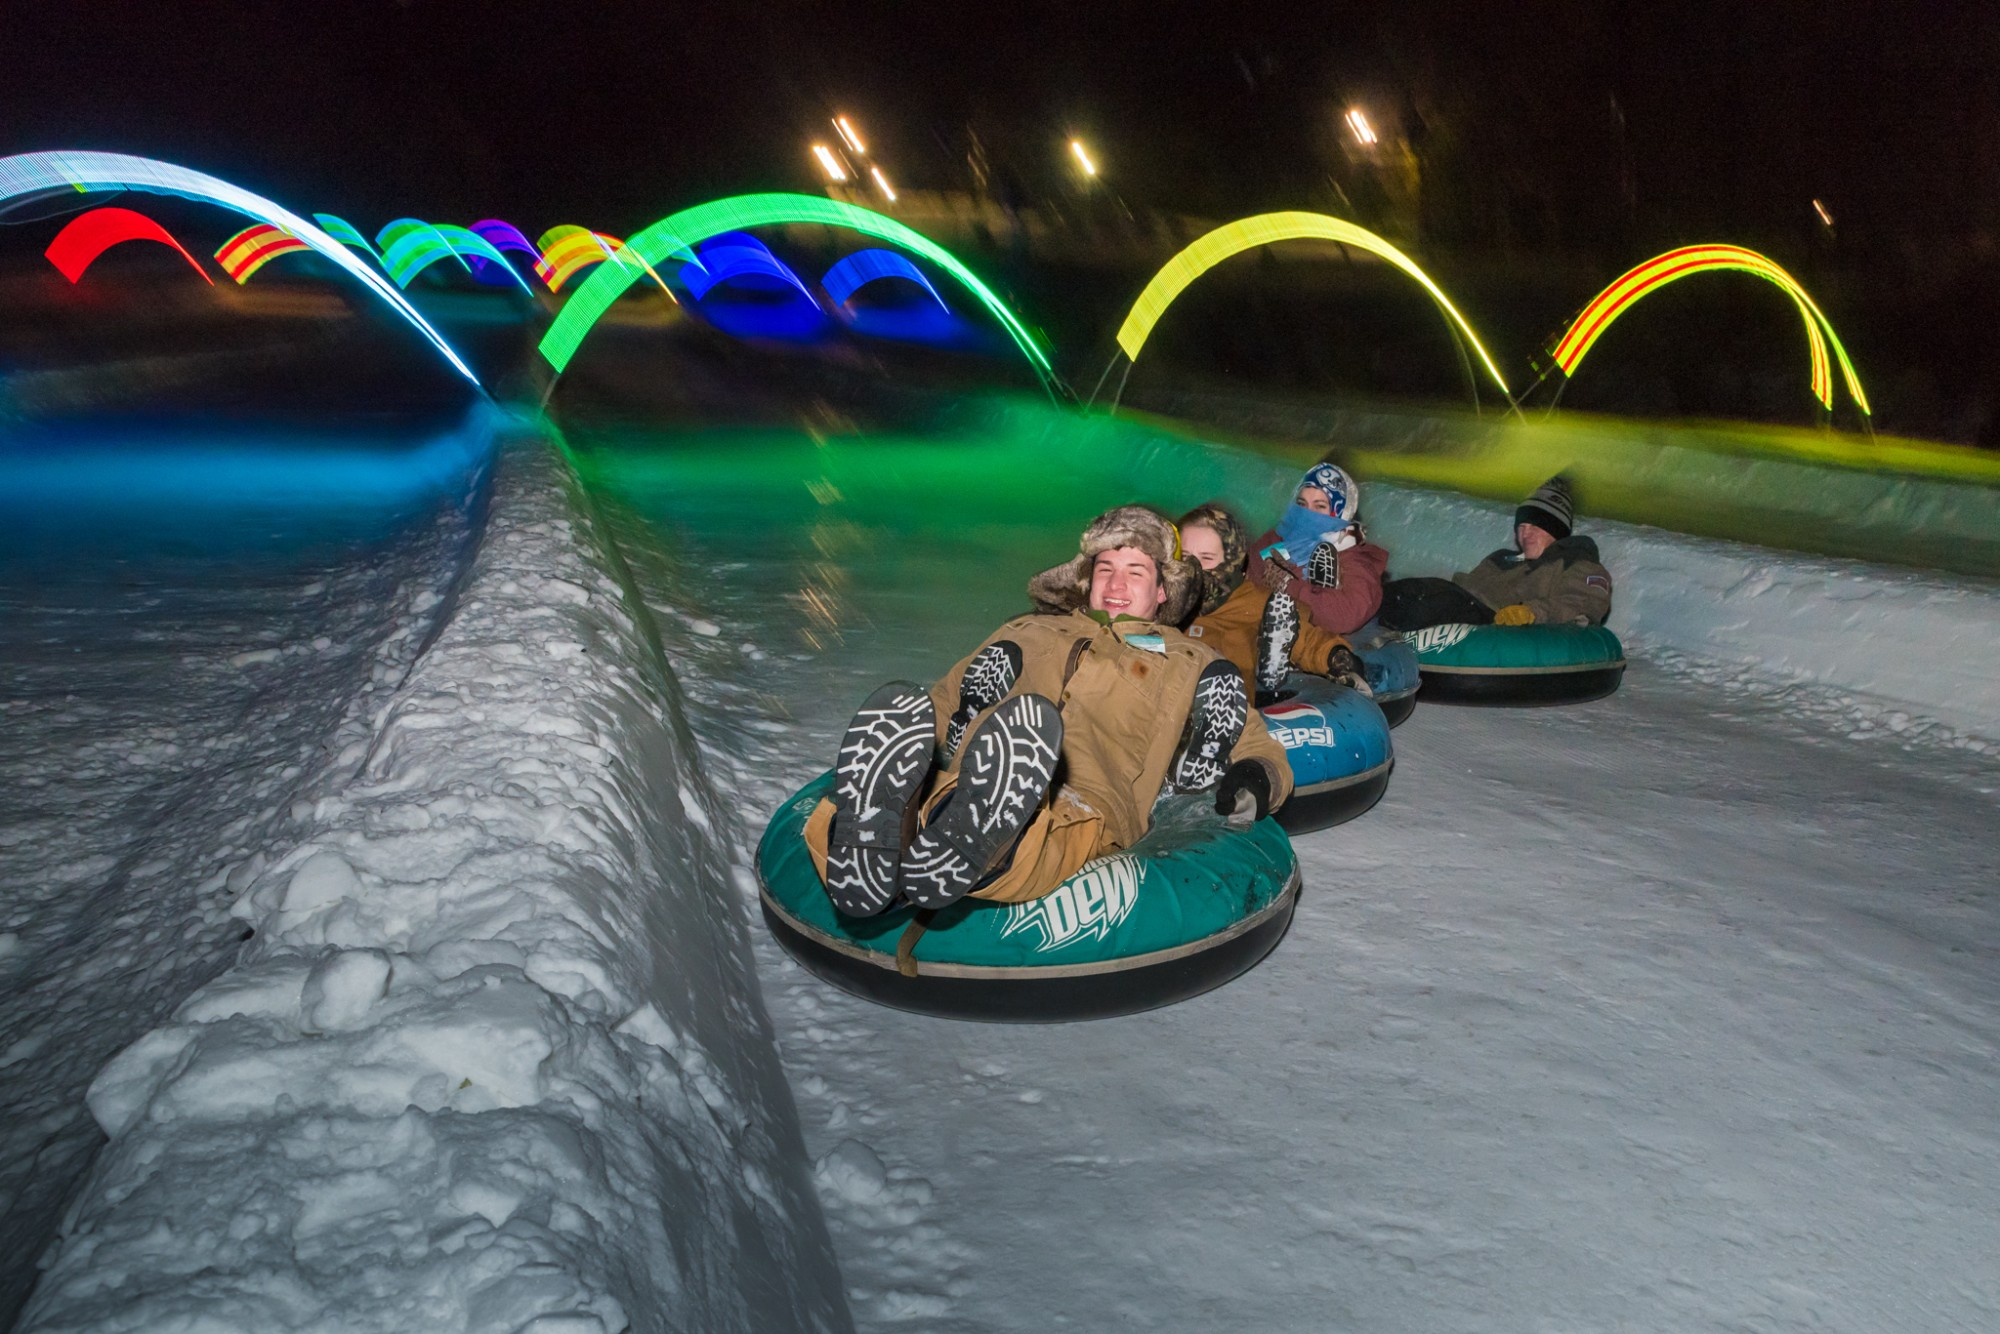 Glow Tubing at Snow Trails in Mansfield, Ohio